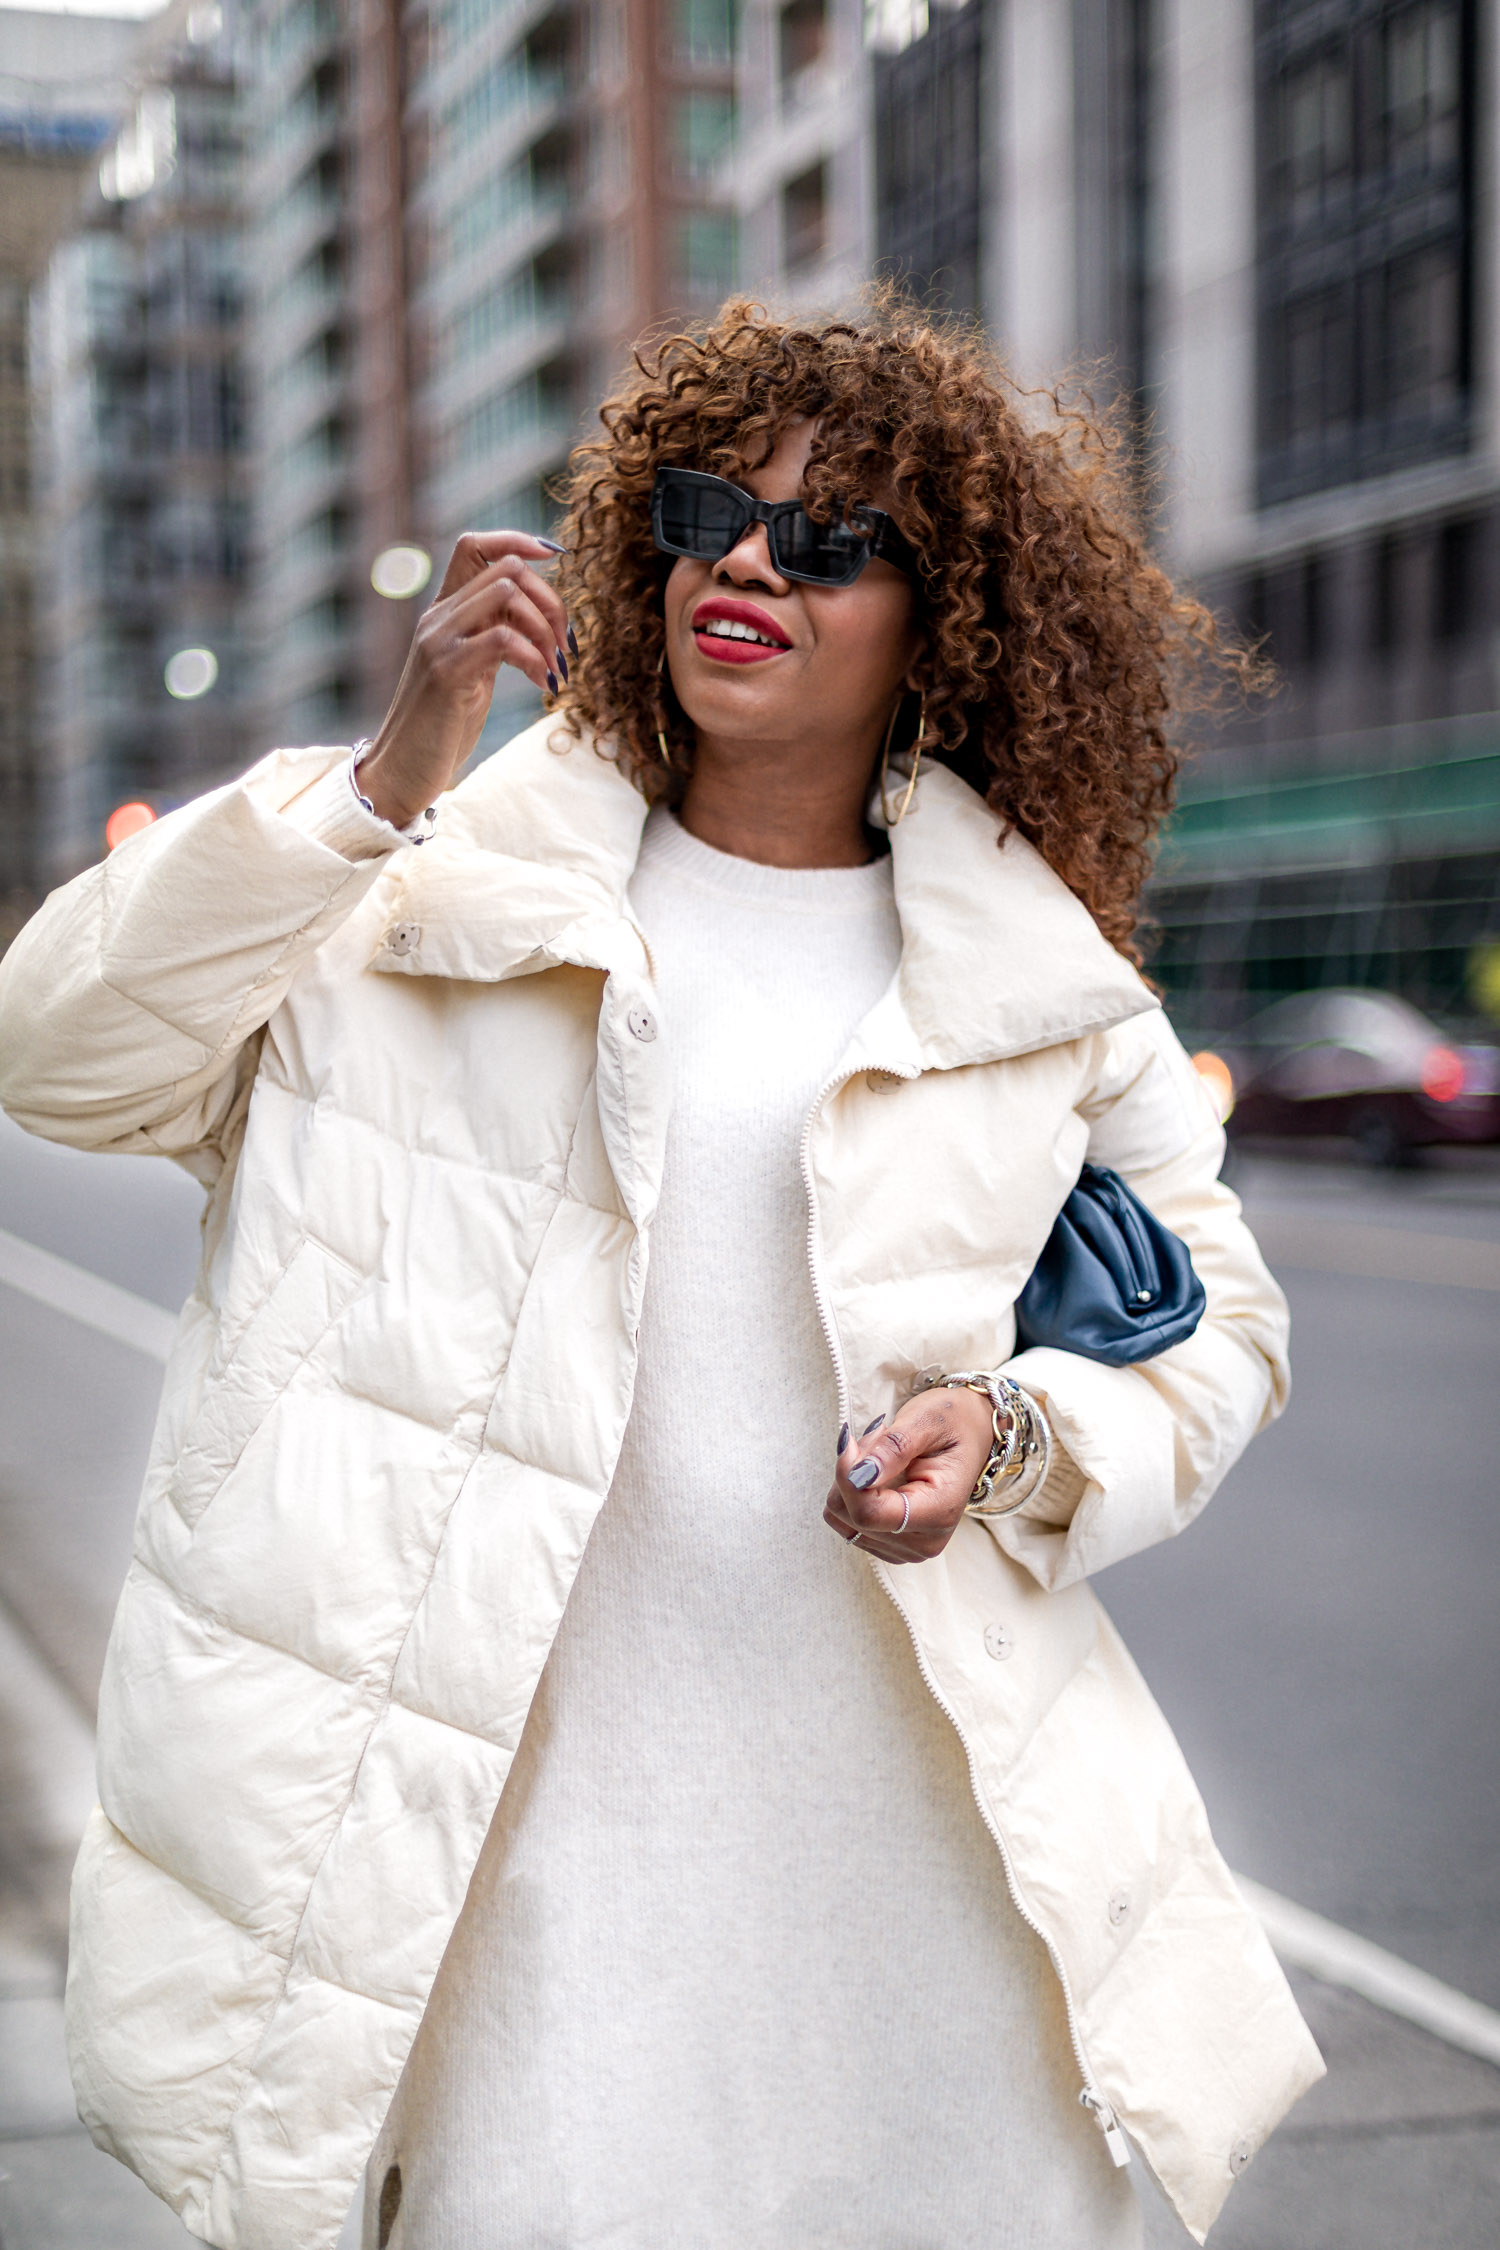 atlanta blogger wearing white puffer jacket, ivory sweater dress, how to style a puffer coat, how warm are puffer coats, why are puffer coats popular, why puffer coats are puffer, how to make a puffer coat chic